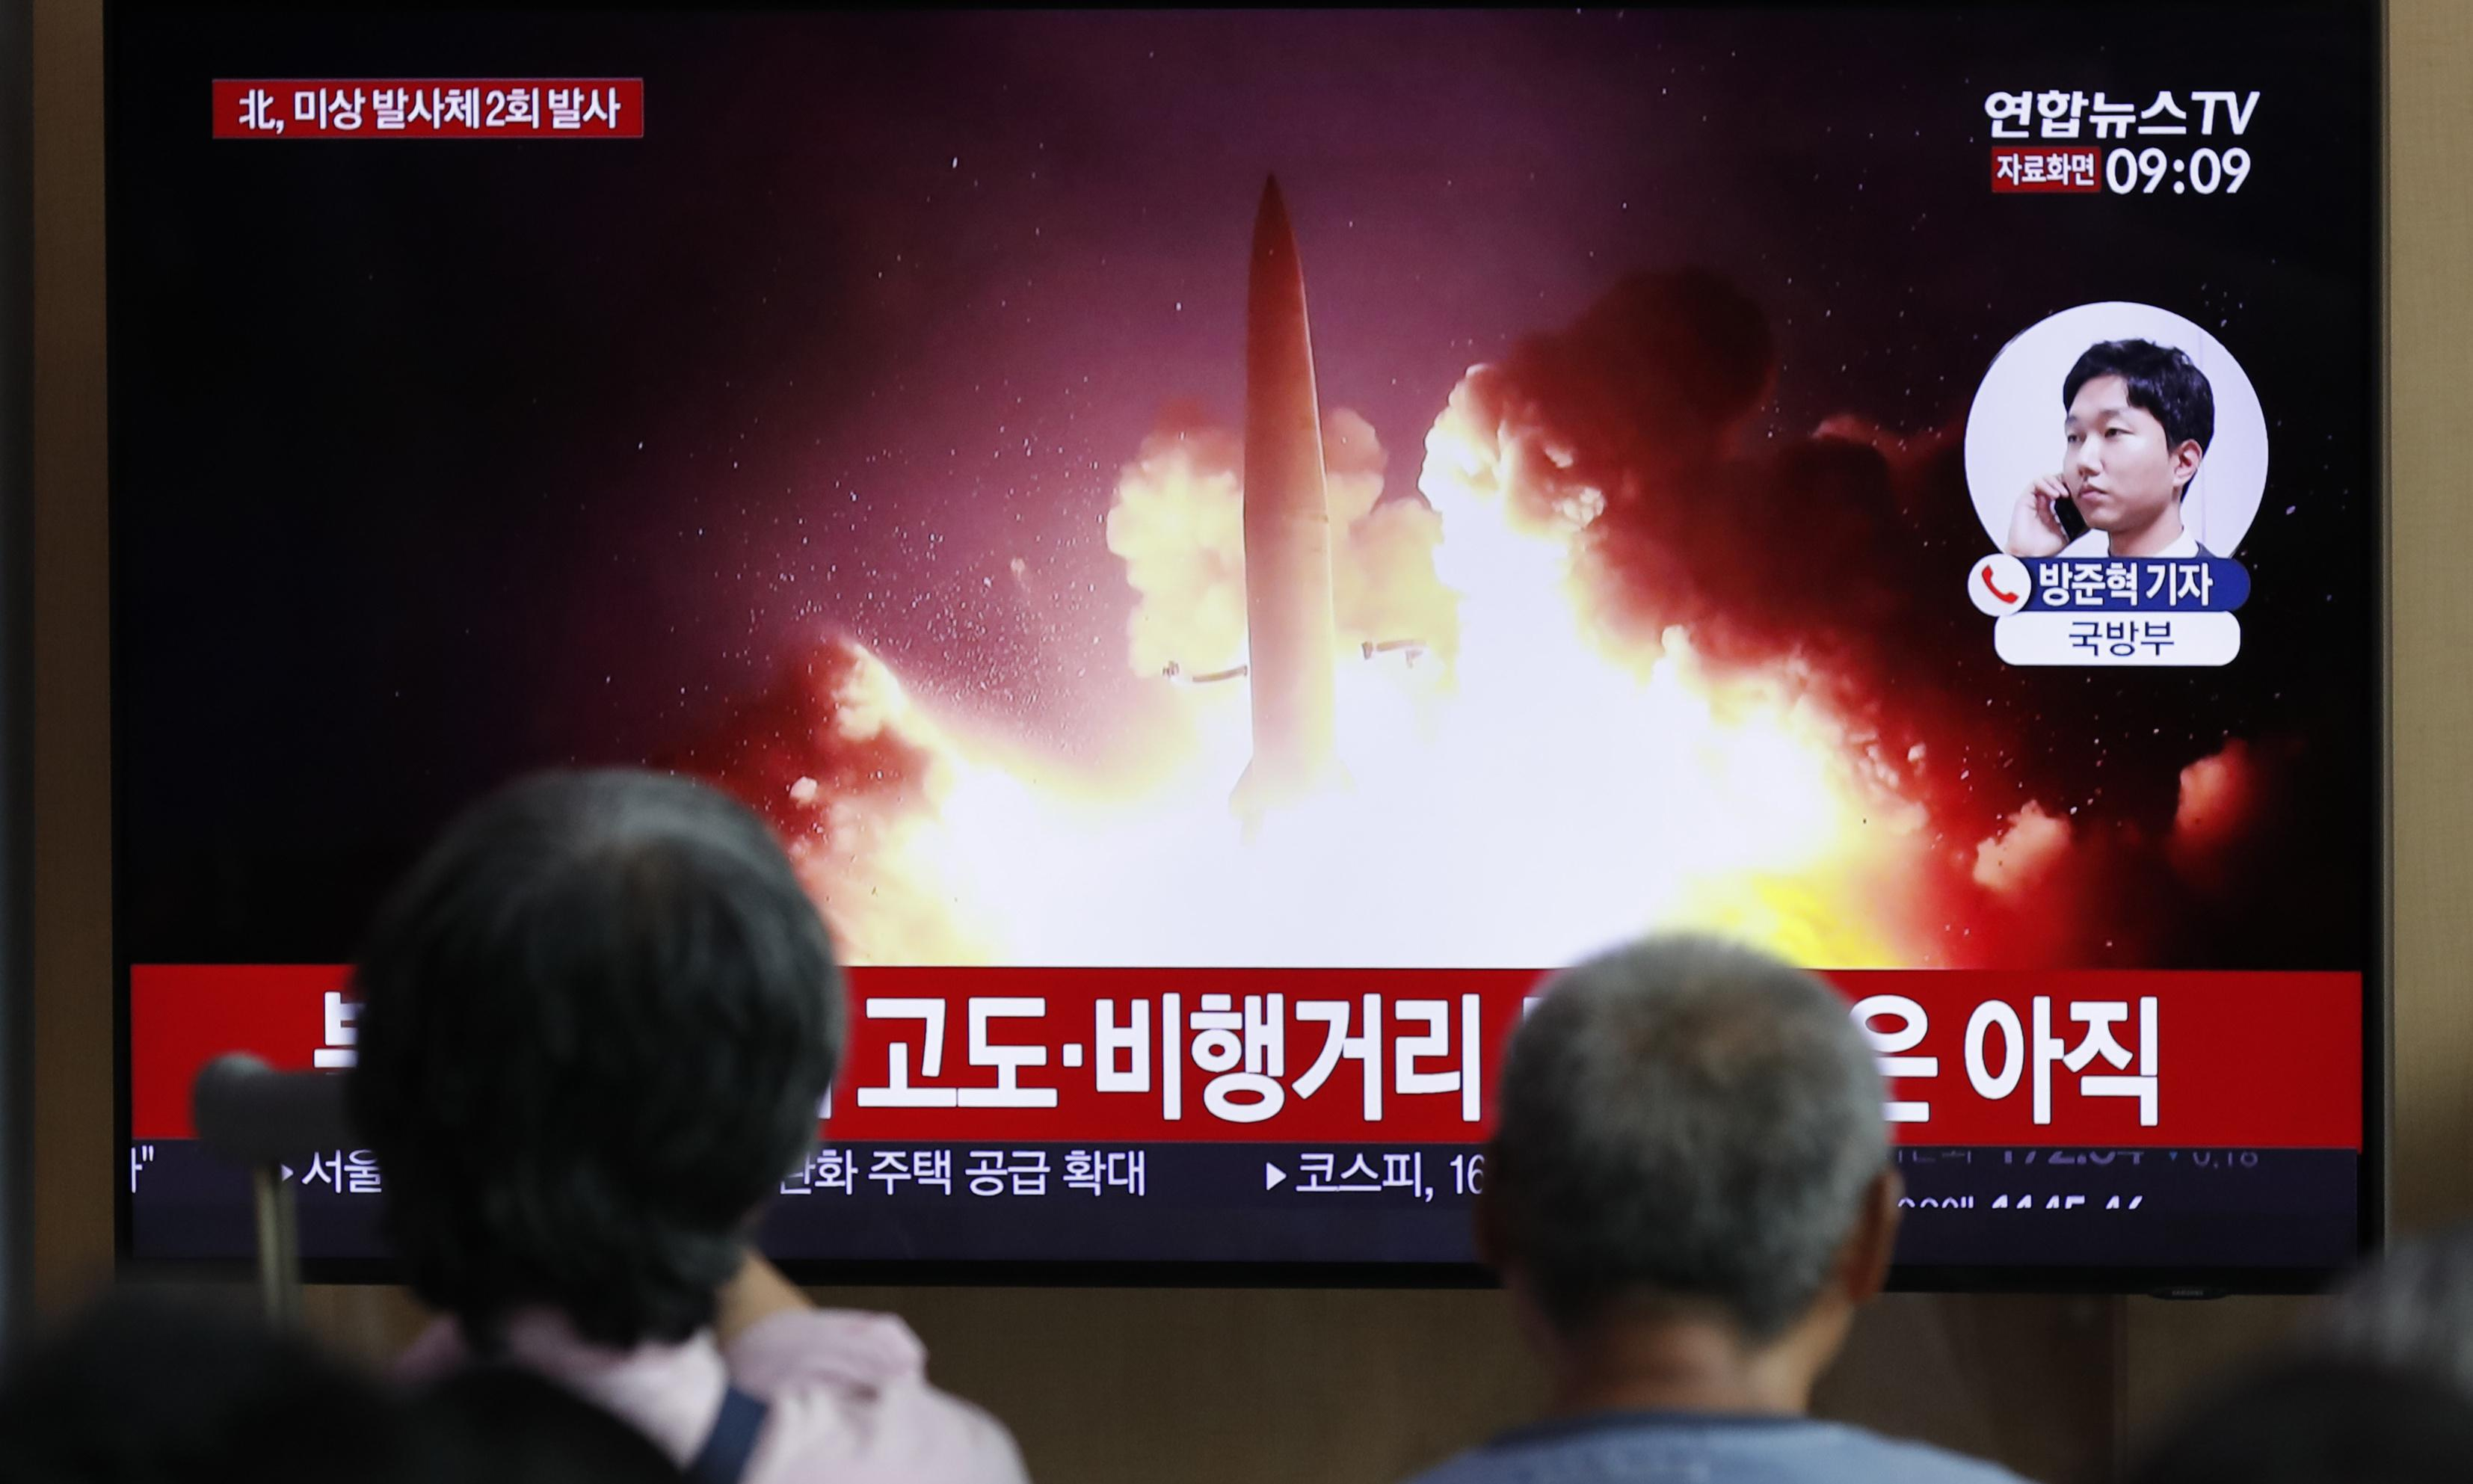 North Korea fires more projectiles and says talks with 'impudent' South are over